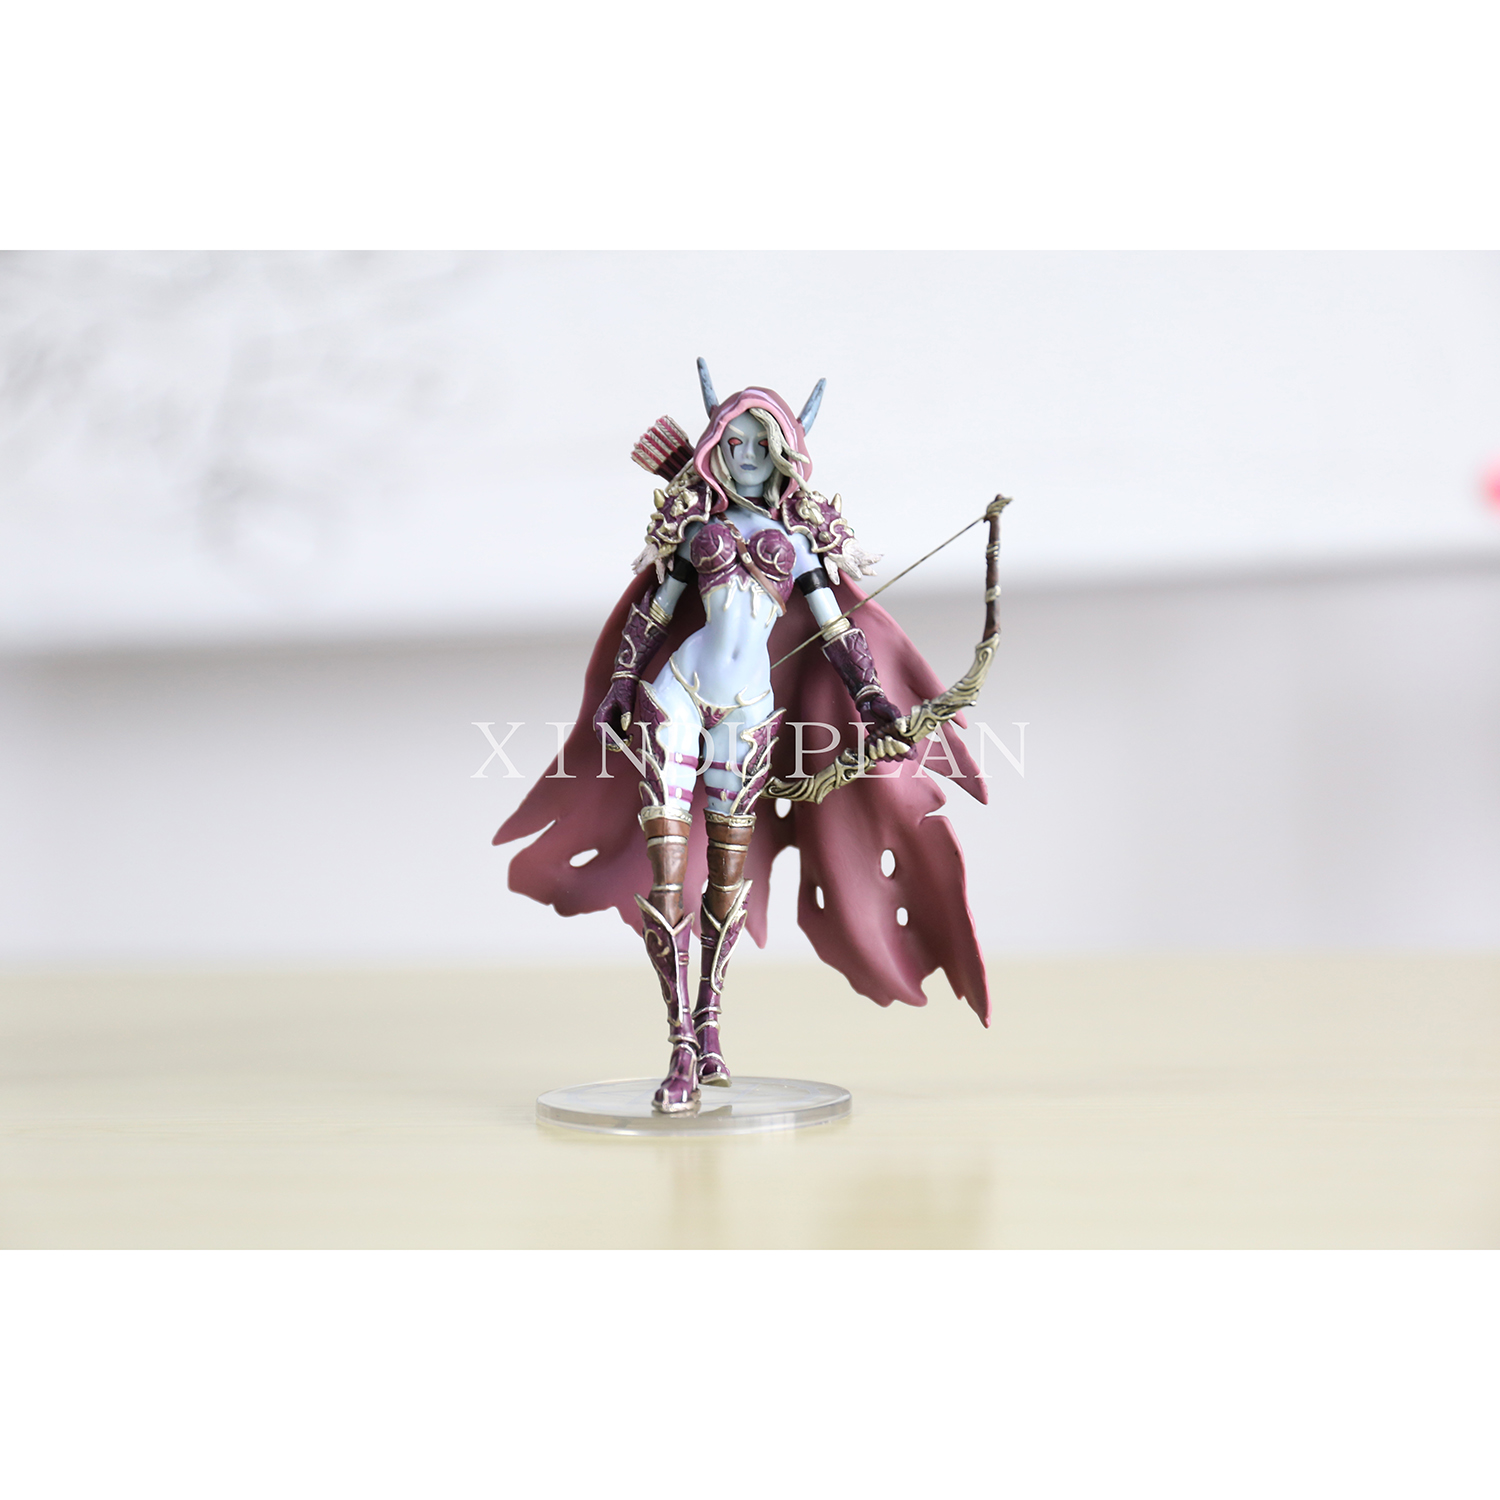 XINDUPLAN NEW Dota 2 Darkness Ranger Lady Sylvanas Windrunner Action Figure Toys 14cm PVC Game Kids PVC Collection Model 0315 game wow lich king sylvanas windrunner figma anime darkness ranger lady pvc action figure toy brinquedos kids birthday toys 6